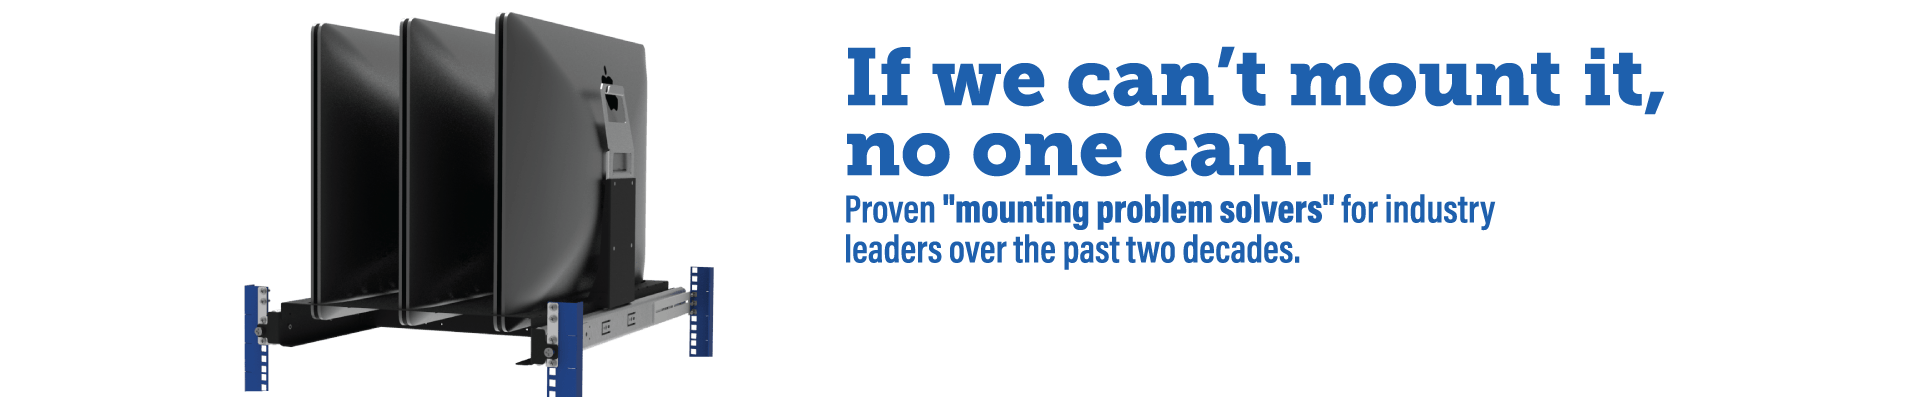 "If we can't mount it, no one can. Proven ""mounting problem solvers"" for industry leaders over the past two decades."